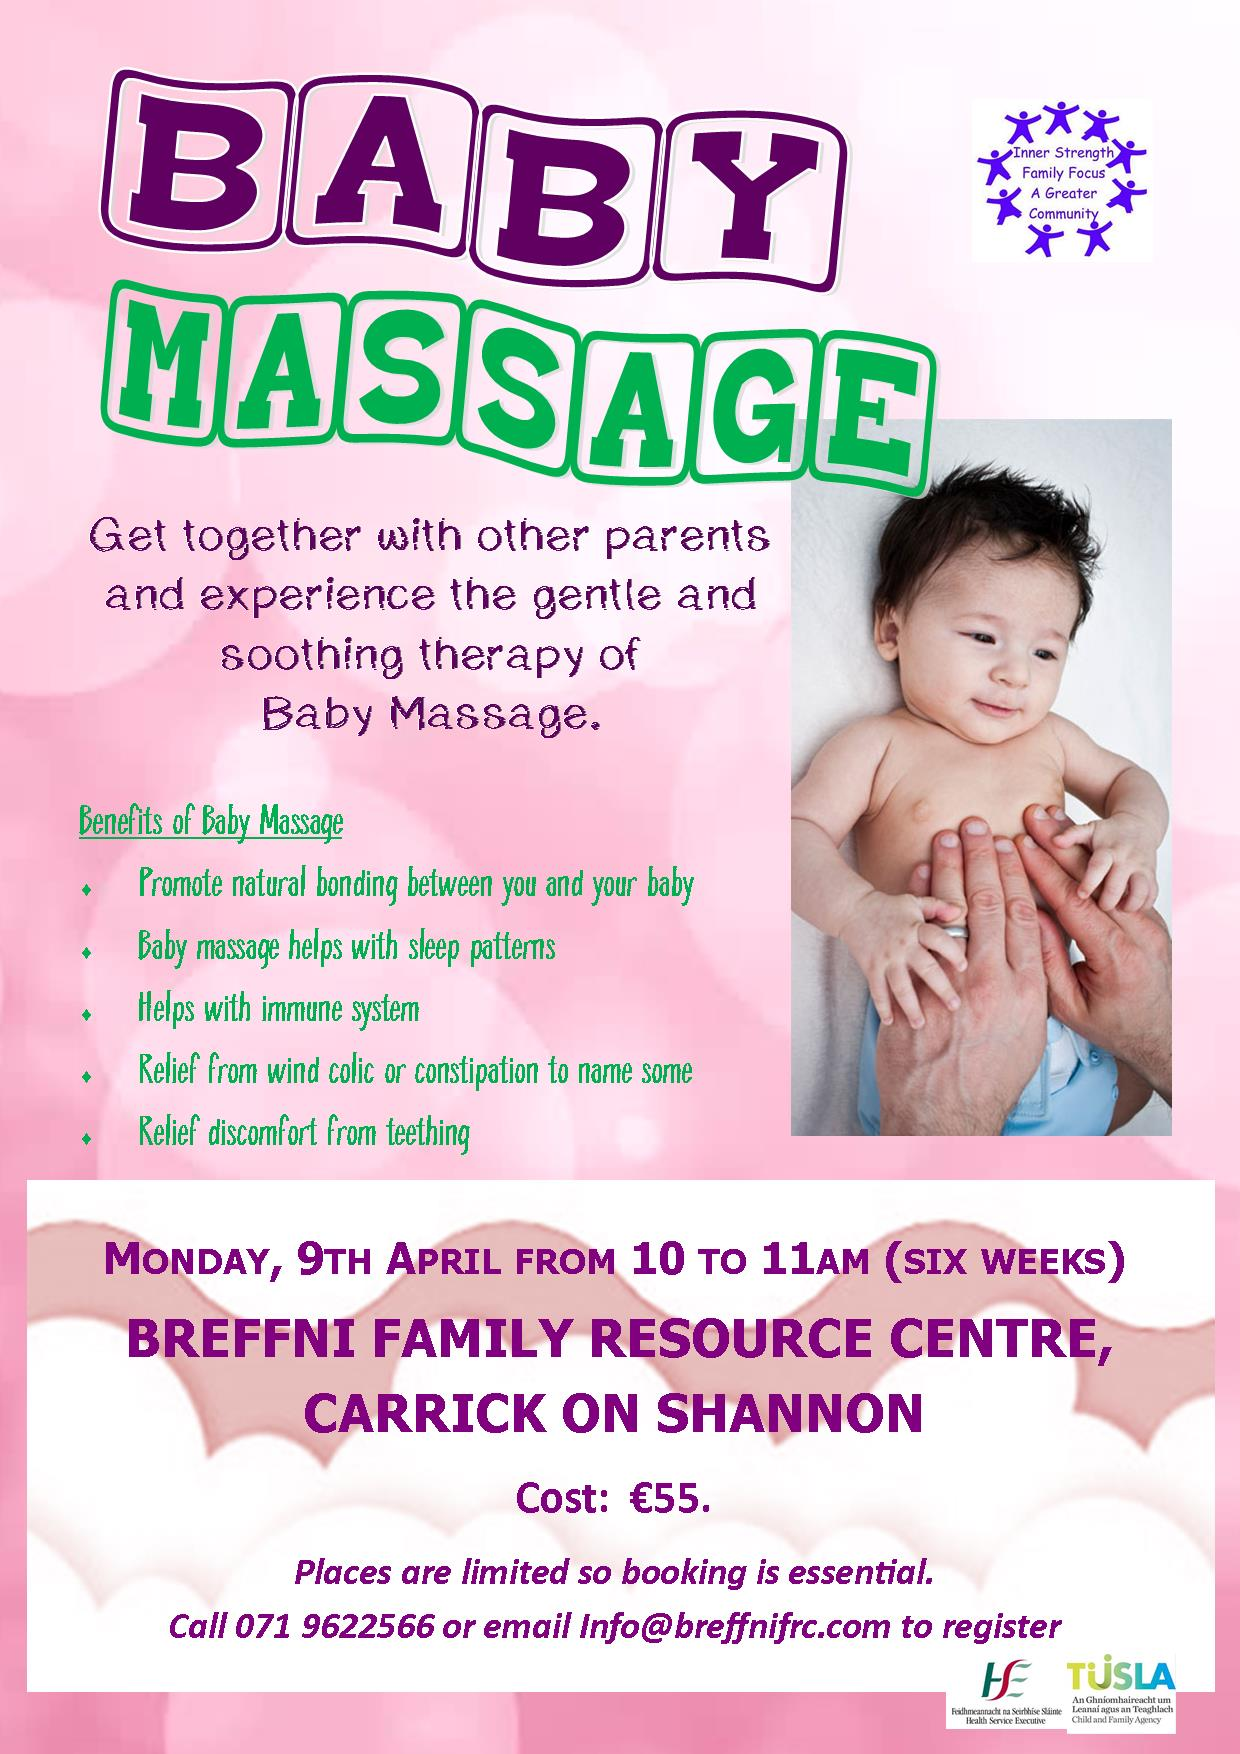 MyCarrick Event - Breffni Family Resource Centre - Baby Massage